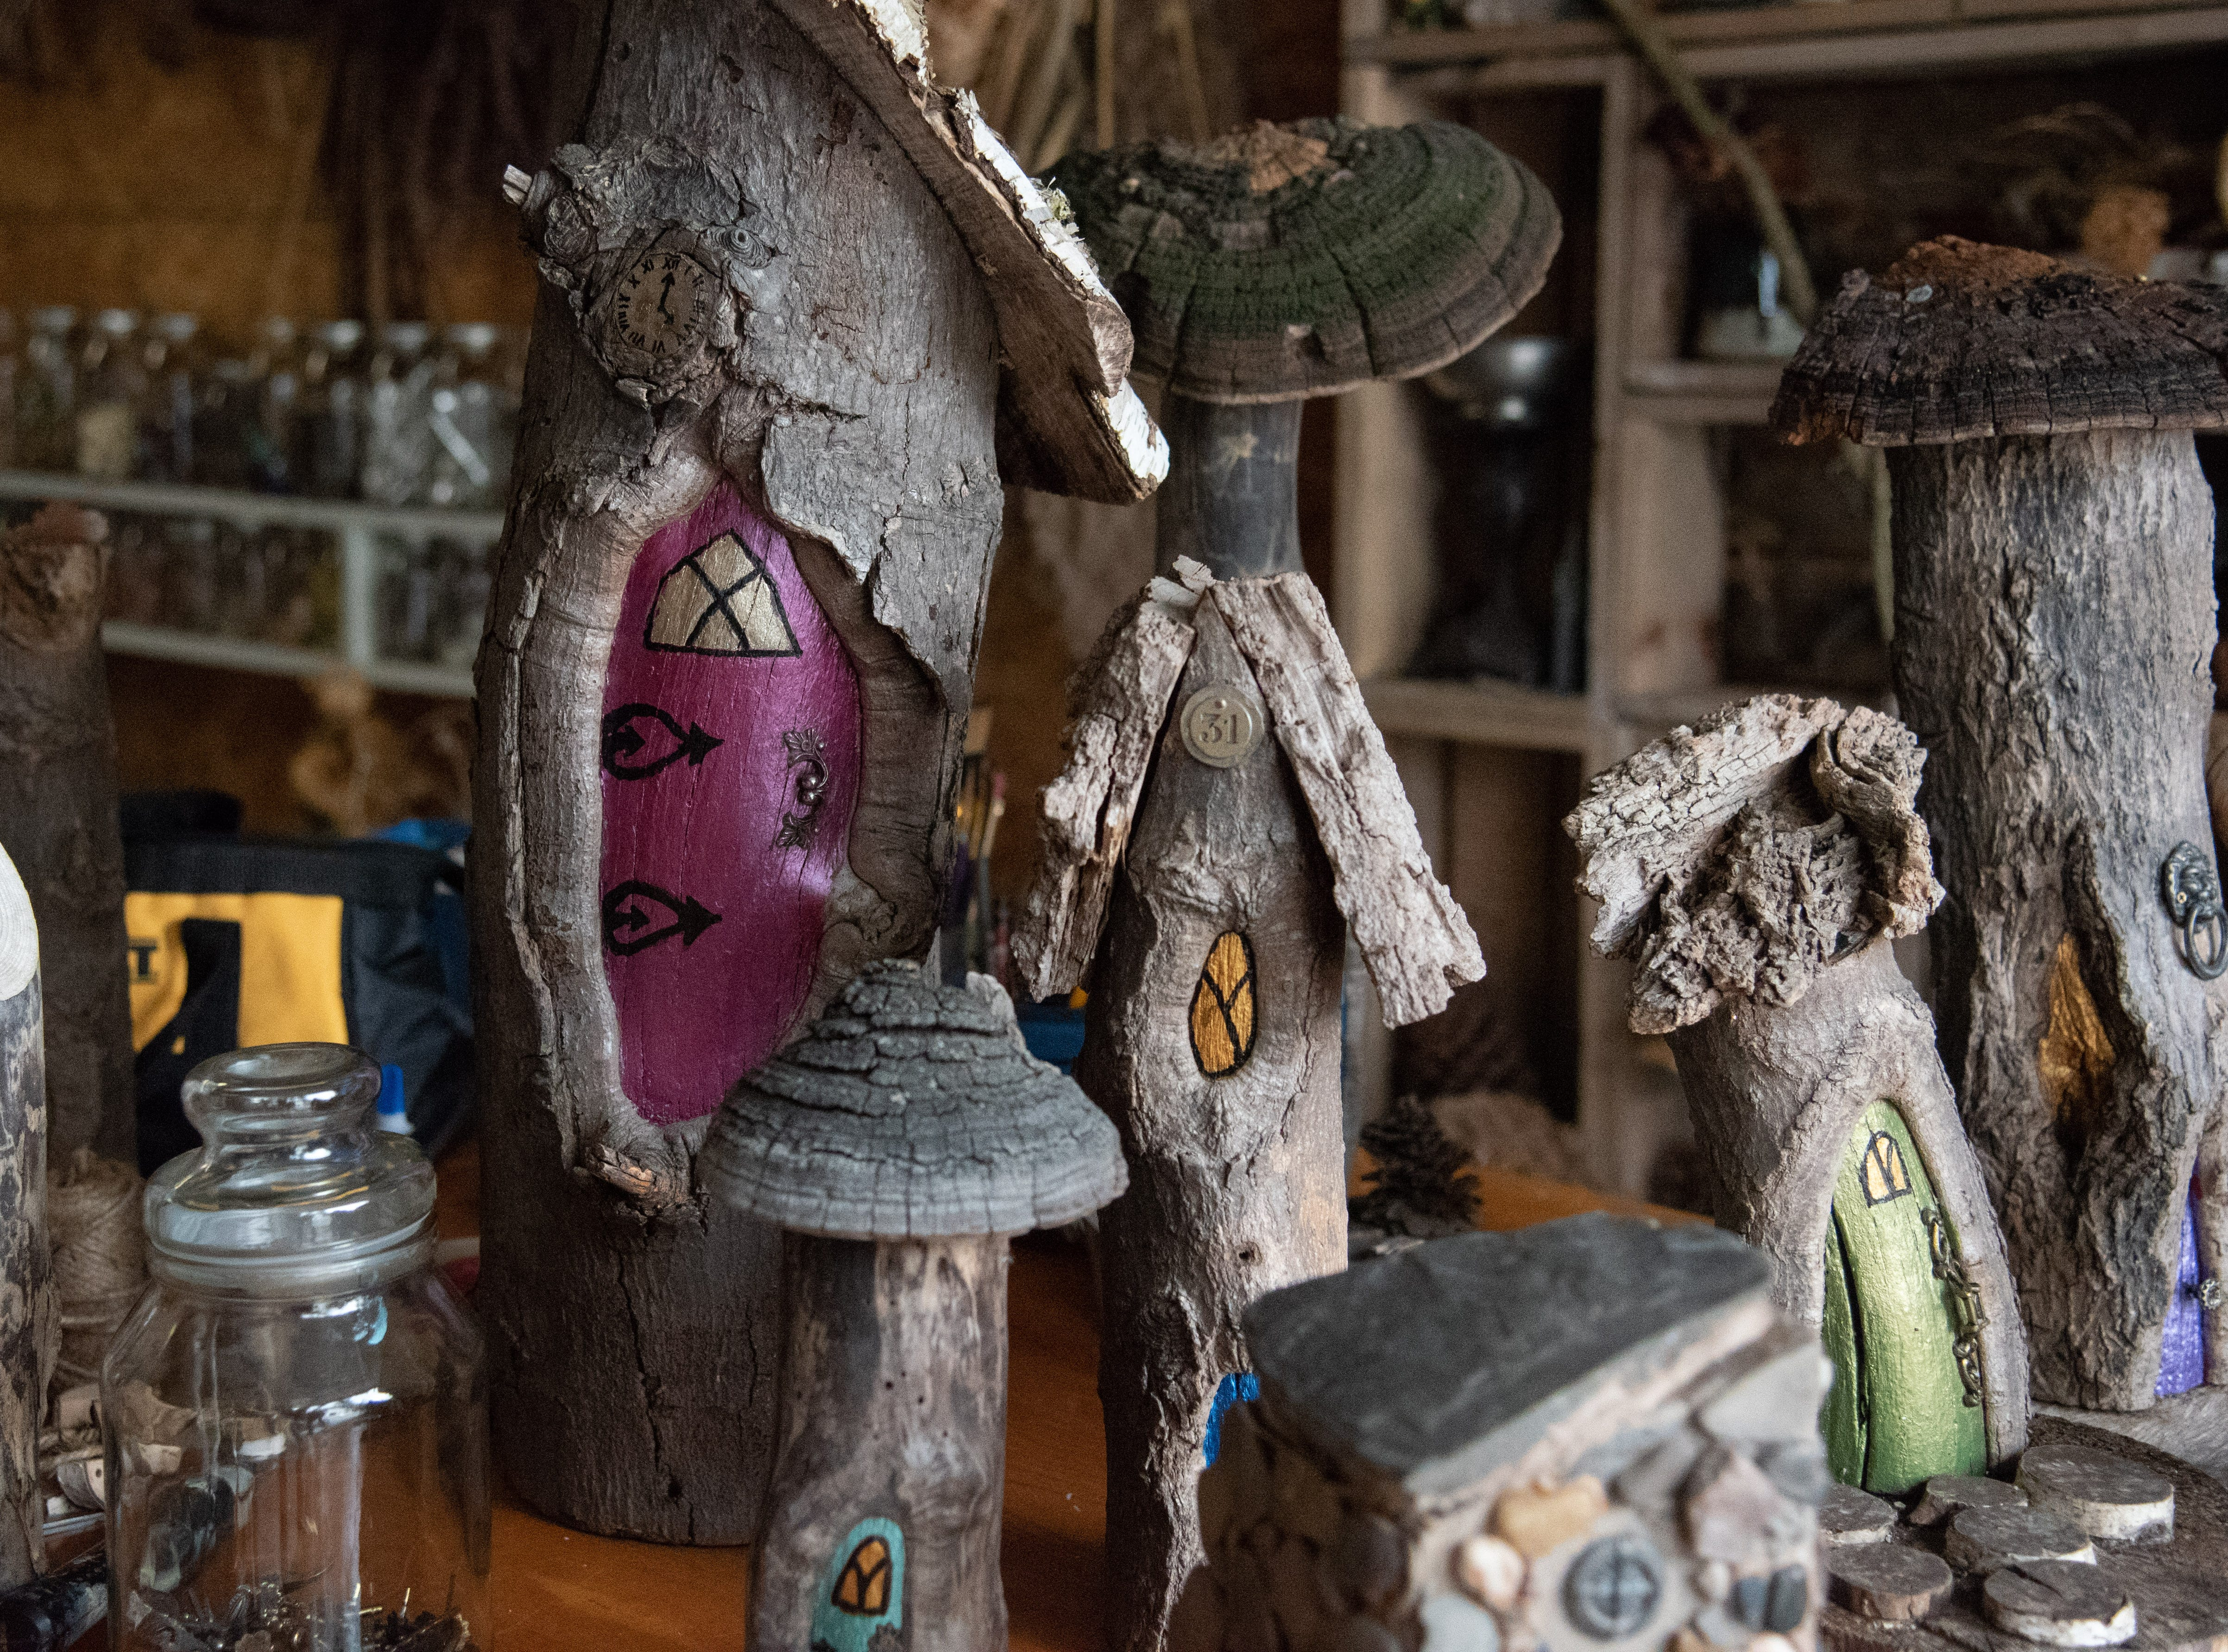 A few of the mobile fairy houses that were removed from Tinker Nature Park last week have been safely relocated to their creators' magical workshop in Rush. Betsy Marshall and her husband, Chris, have been creating and maintaining the fairy houses at the park in Henrietta for five years until they were asked to remove them last week. March 24, 2019.